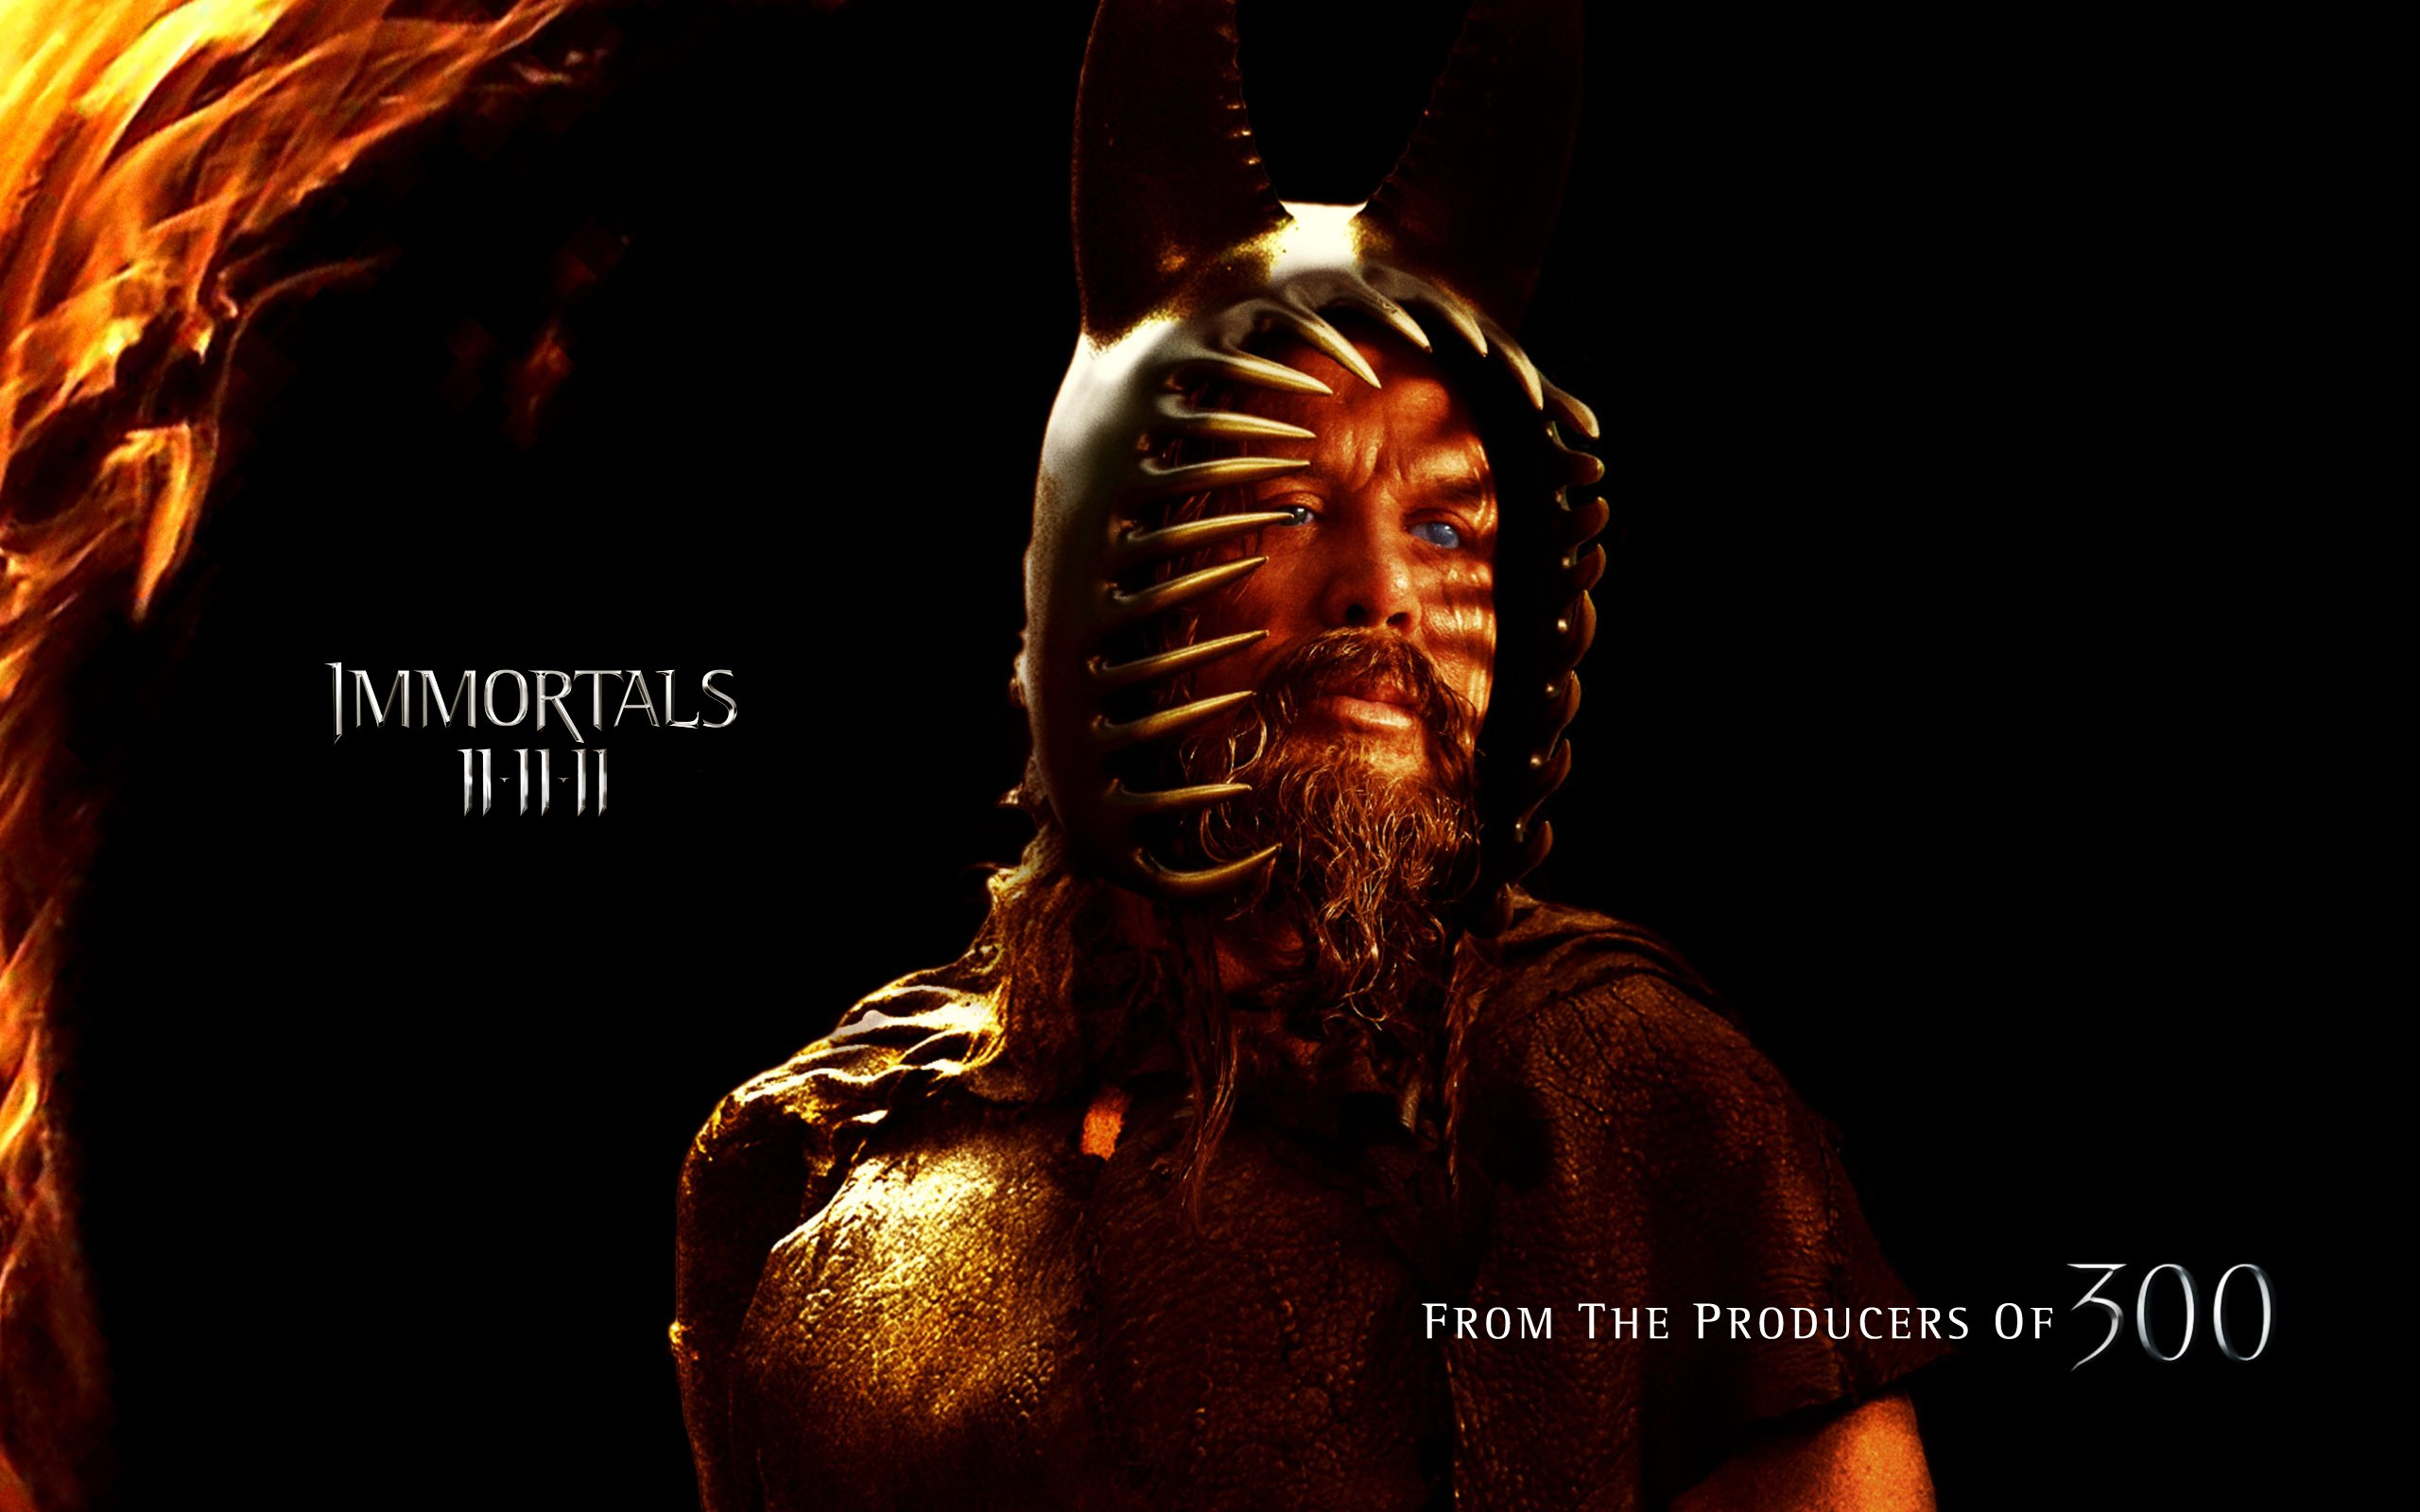 Immortals Movie Poster Movie Film Warrior Poster